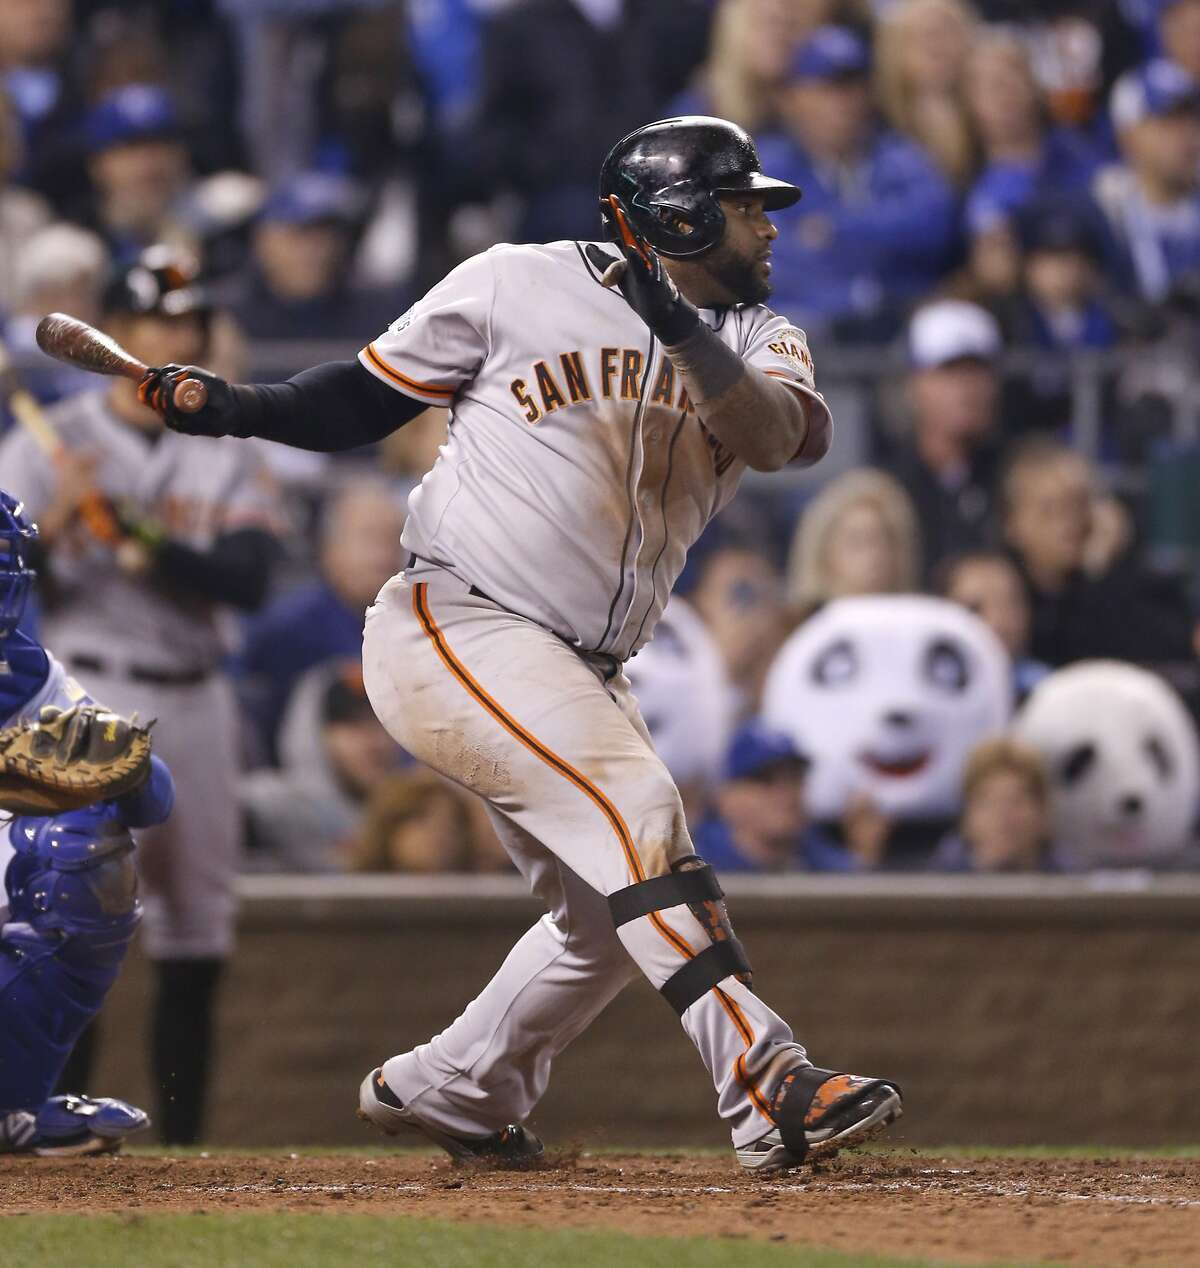 Giants Pablo Sandoval doubles in the eighth inning during Game 7 of the World Series at Kauffman Stadium on Wednesday, Oct. 29, 2014 in Kansas City, Mo.